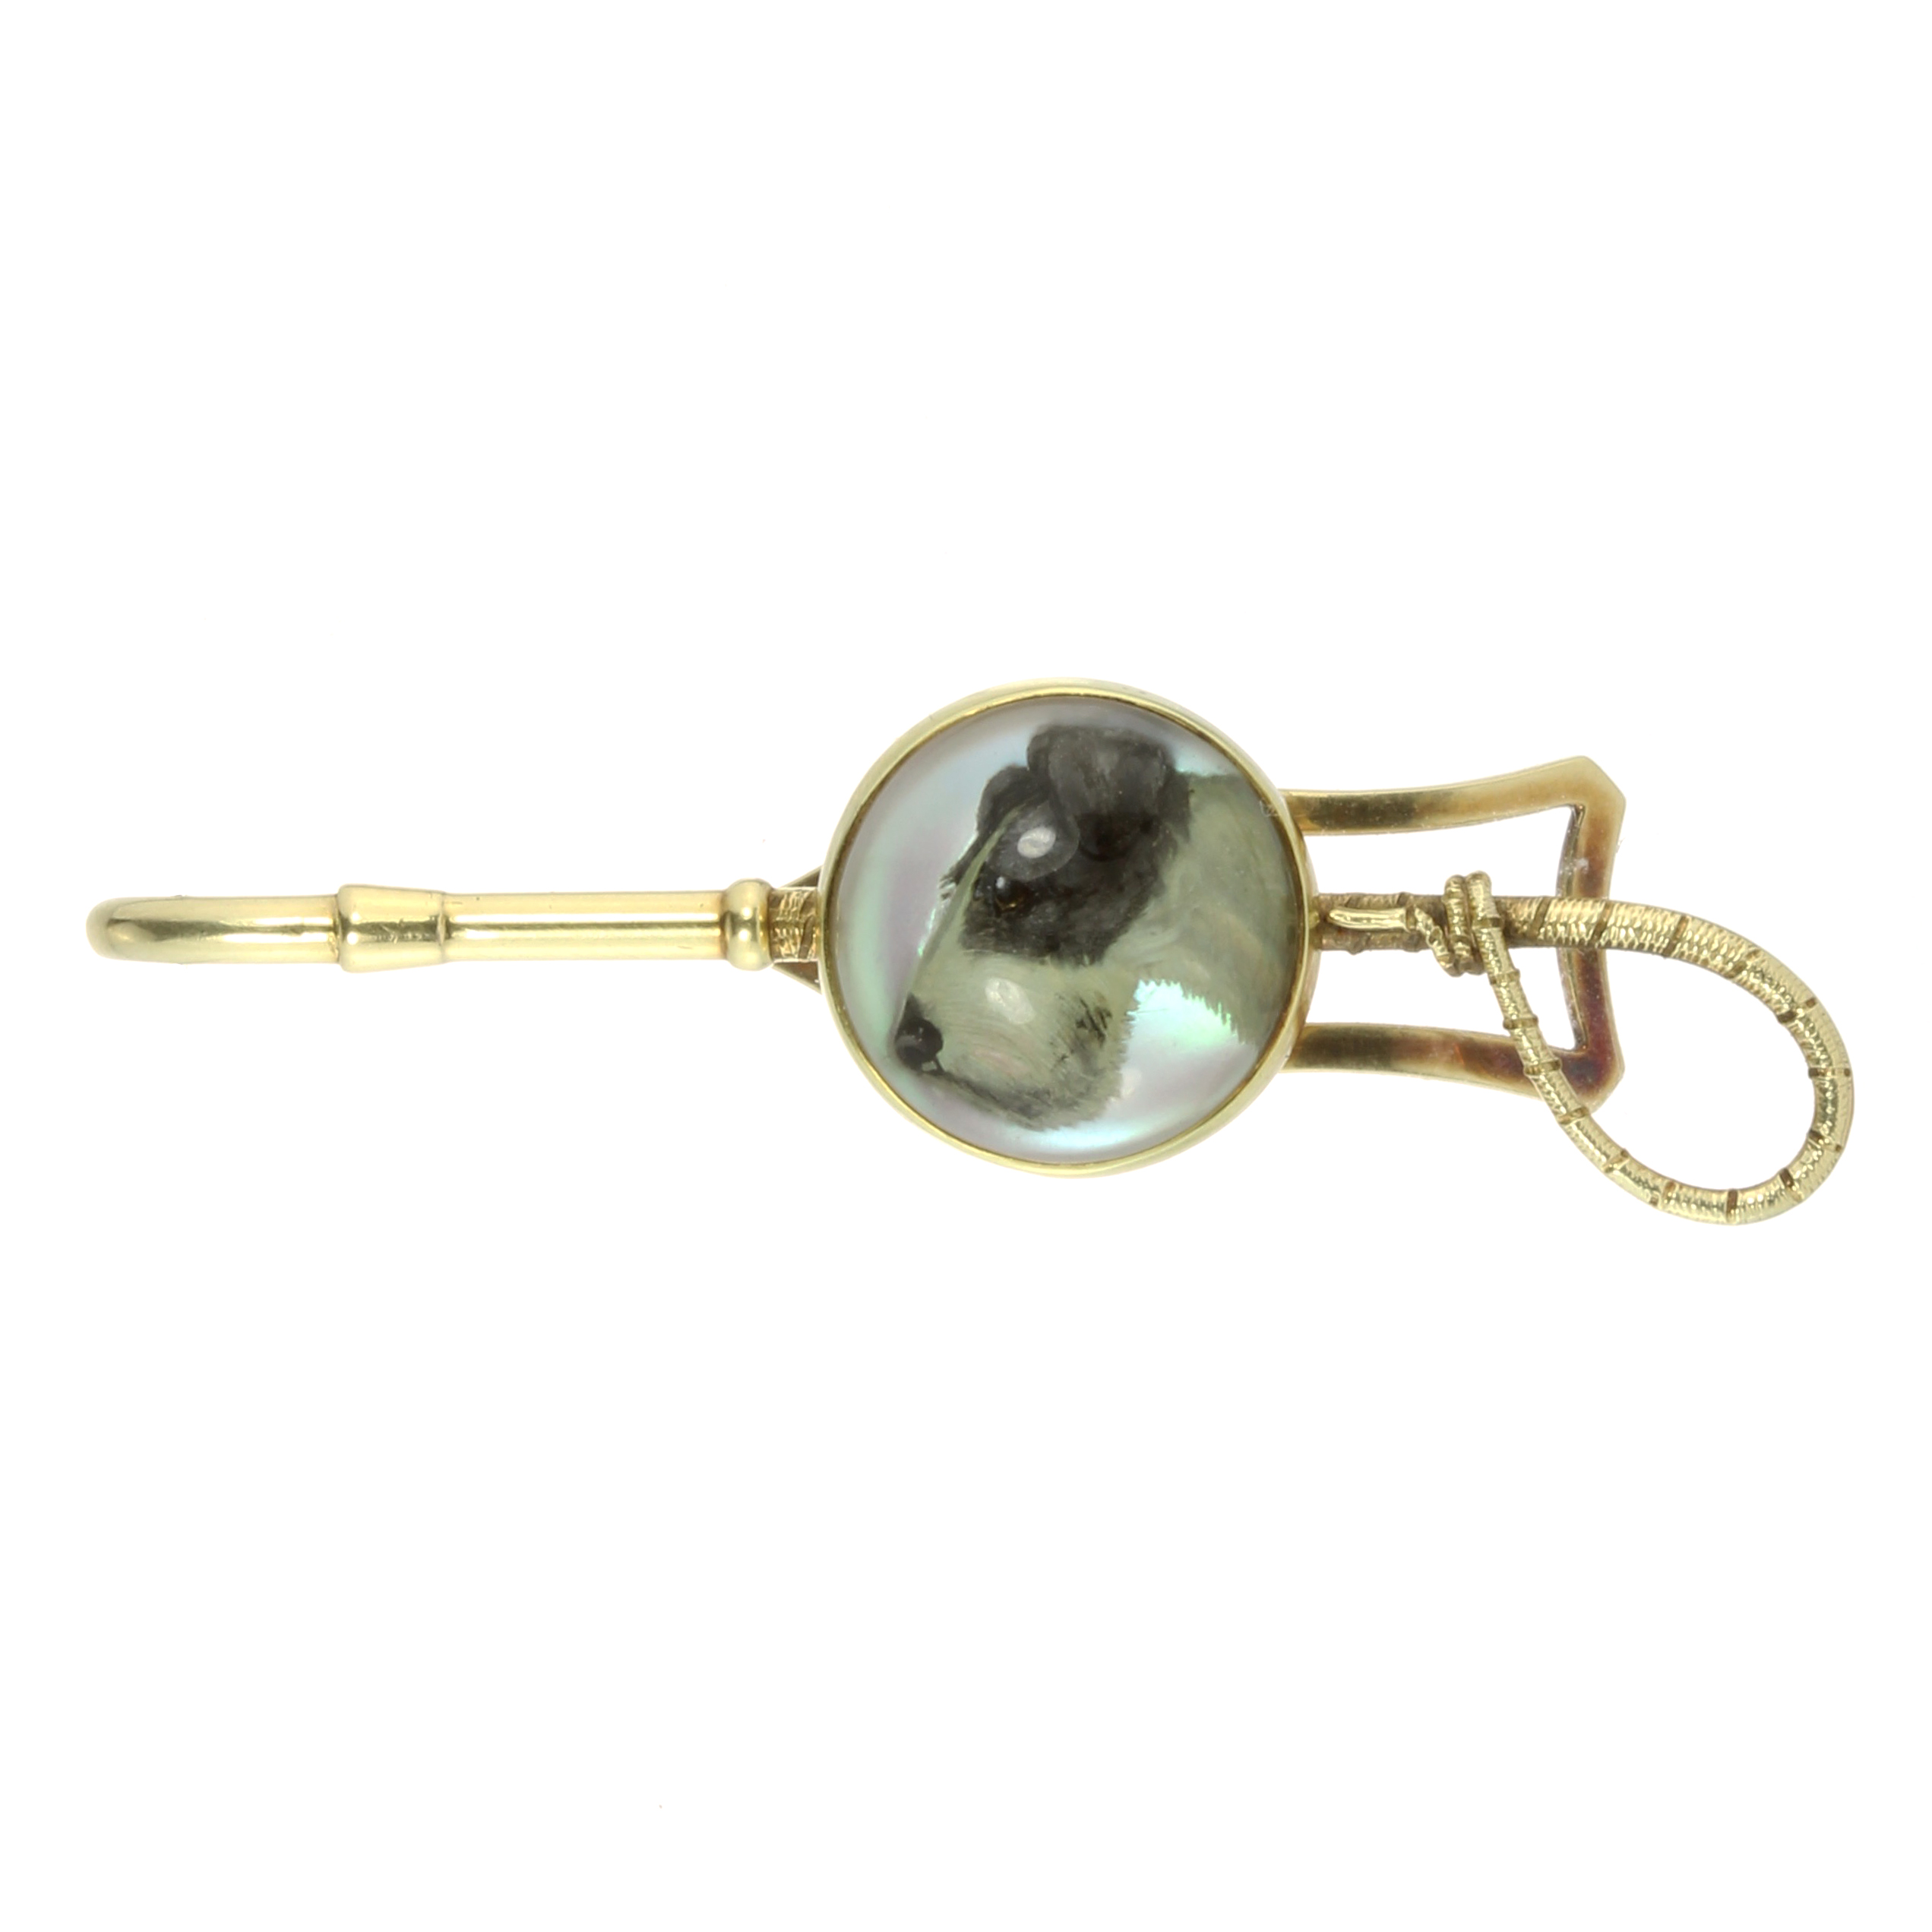 AN ANTIQUE ESSEX CRYSTAL DOG AND RIDING CROP TIE CLIP in high carat yellow gold, the riding crop set